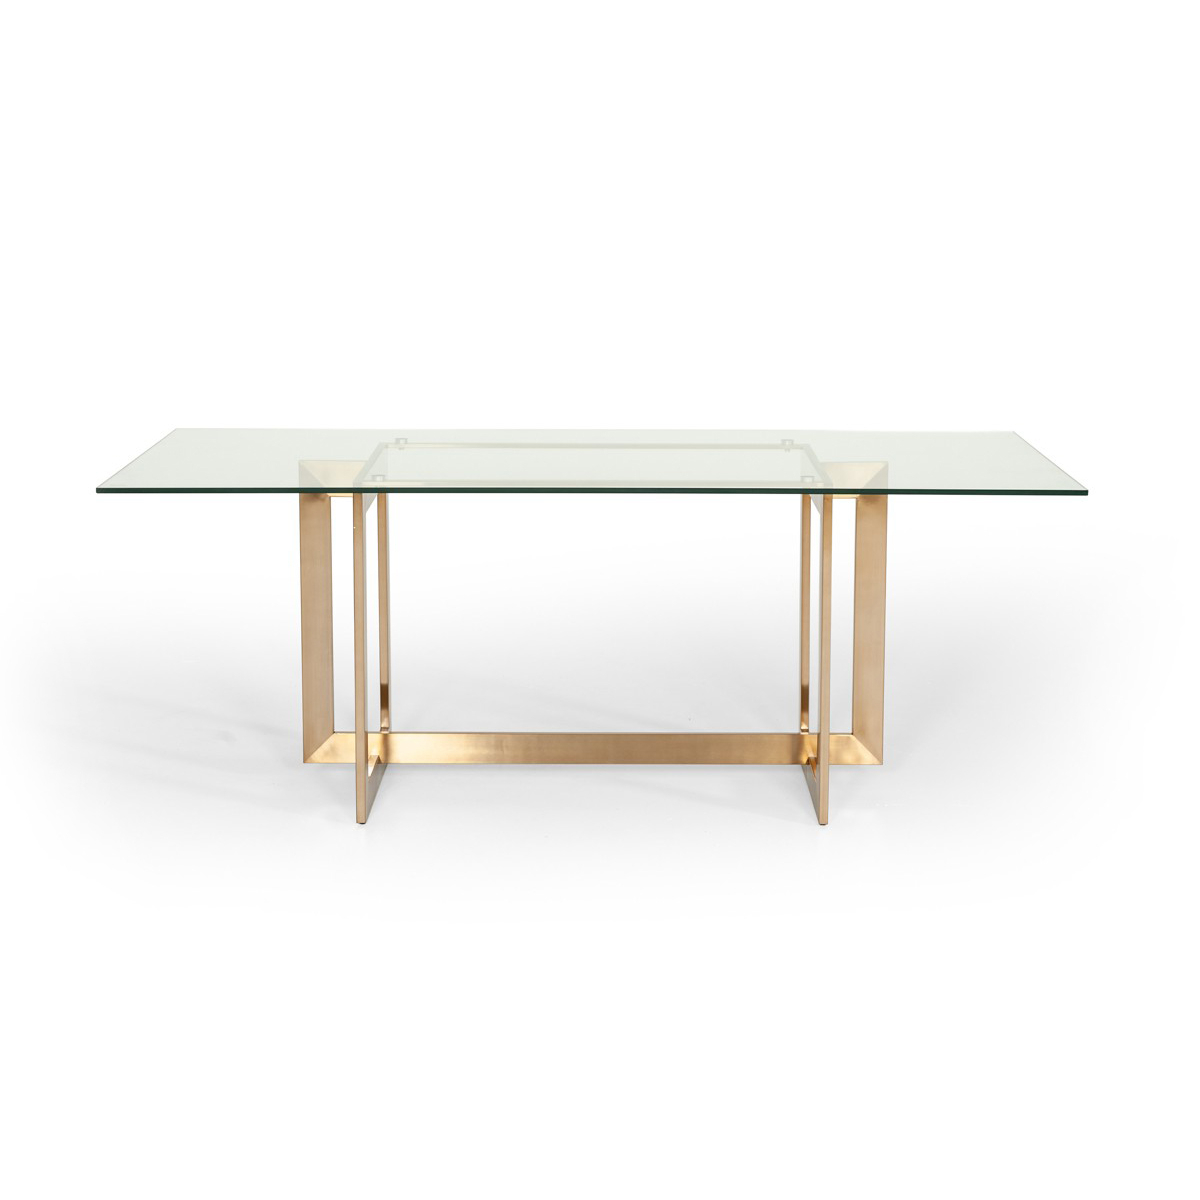 Event Trade Show Furniture Rental With Regard To 2020 Dining Tables With Brushed Gold Stainless Finish (View 13 of 25)